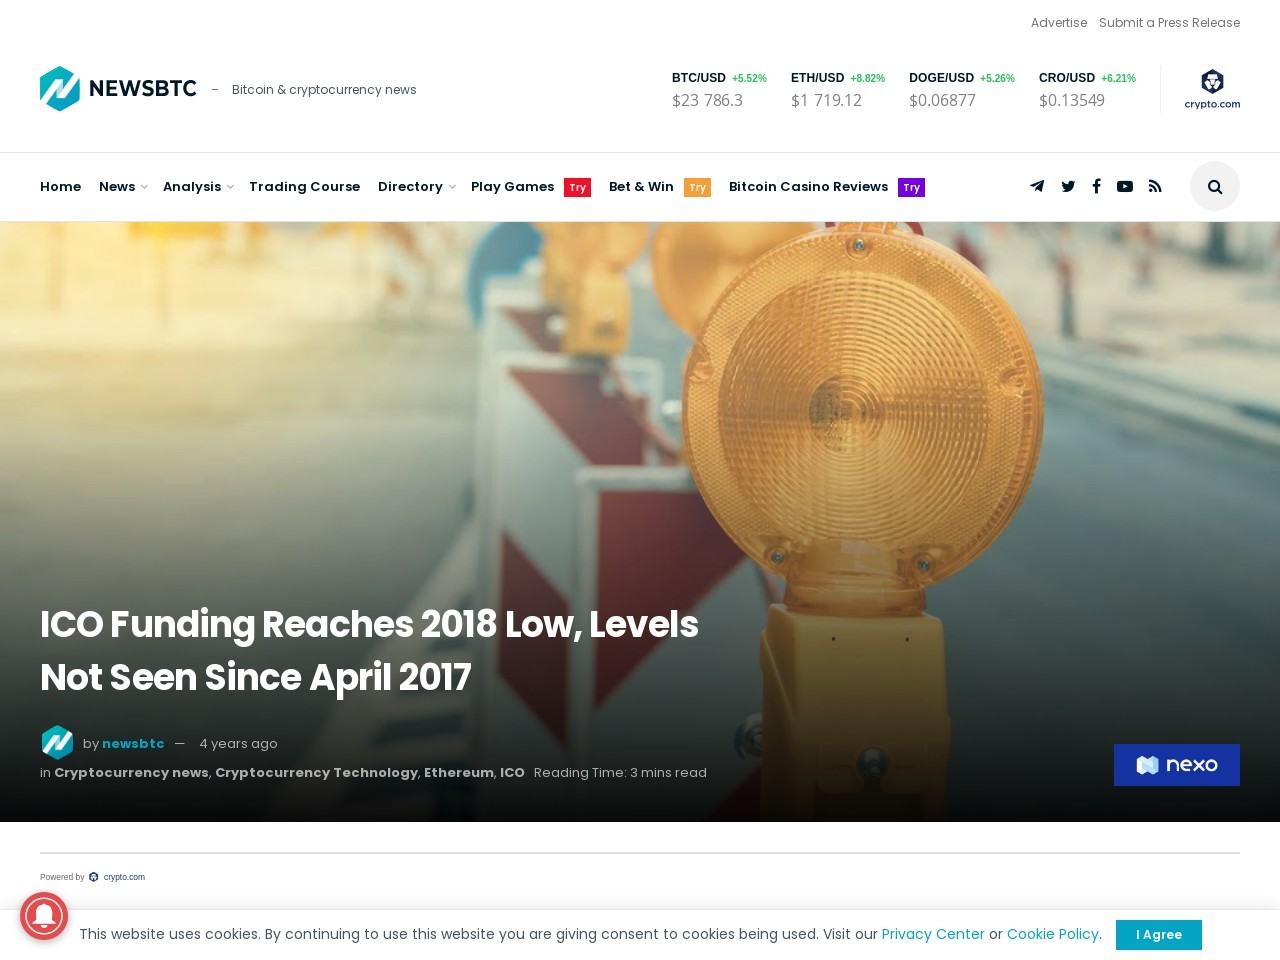 ICO Funding Reaches 2018 Low, Levels Not Seen Since April 2017